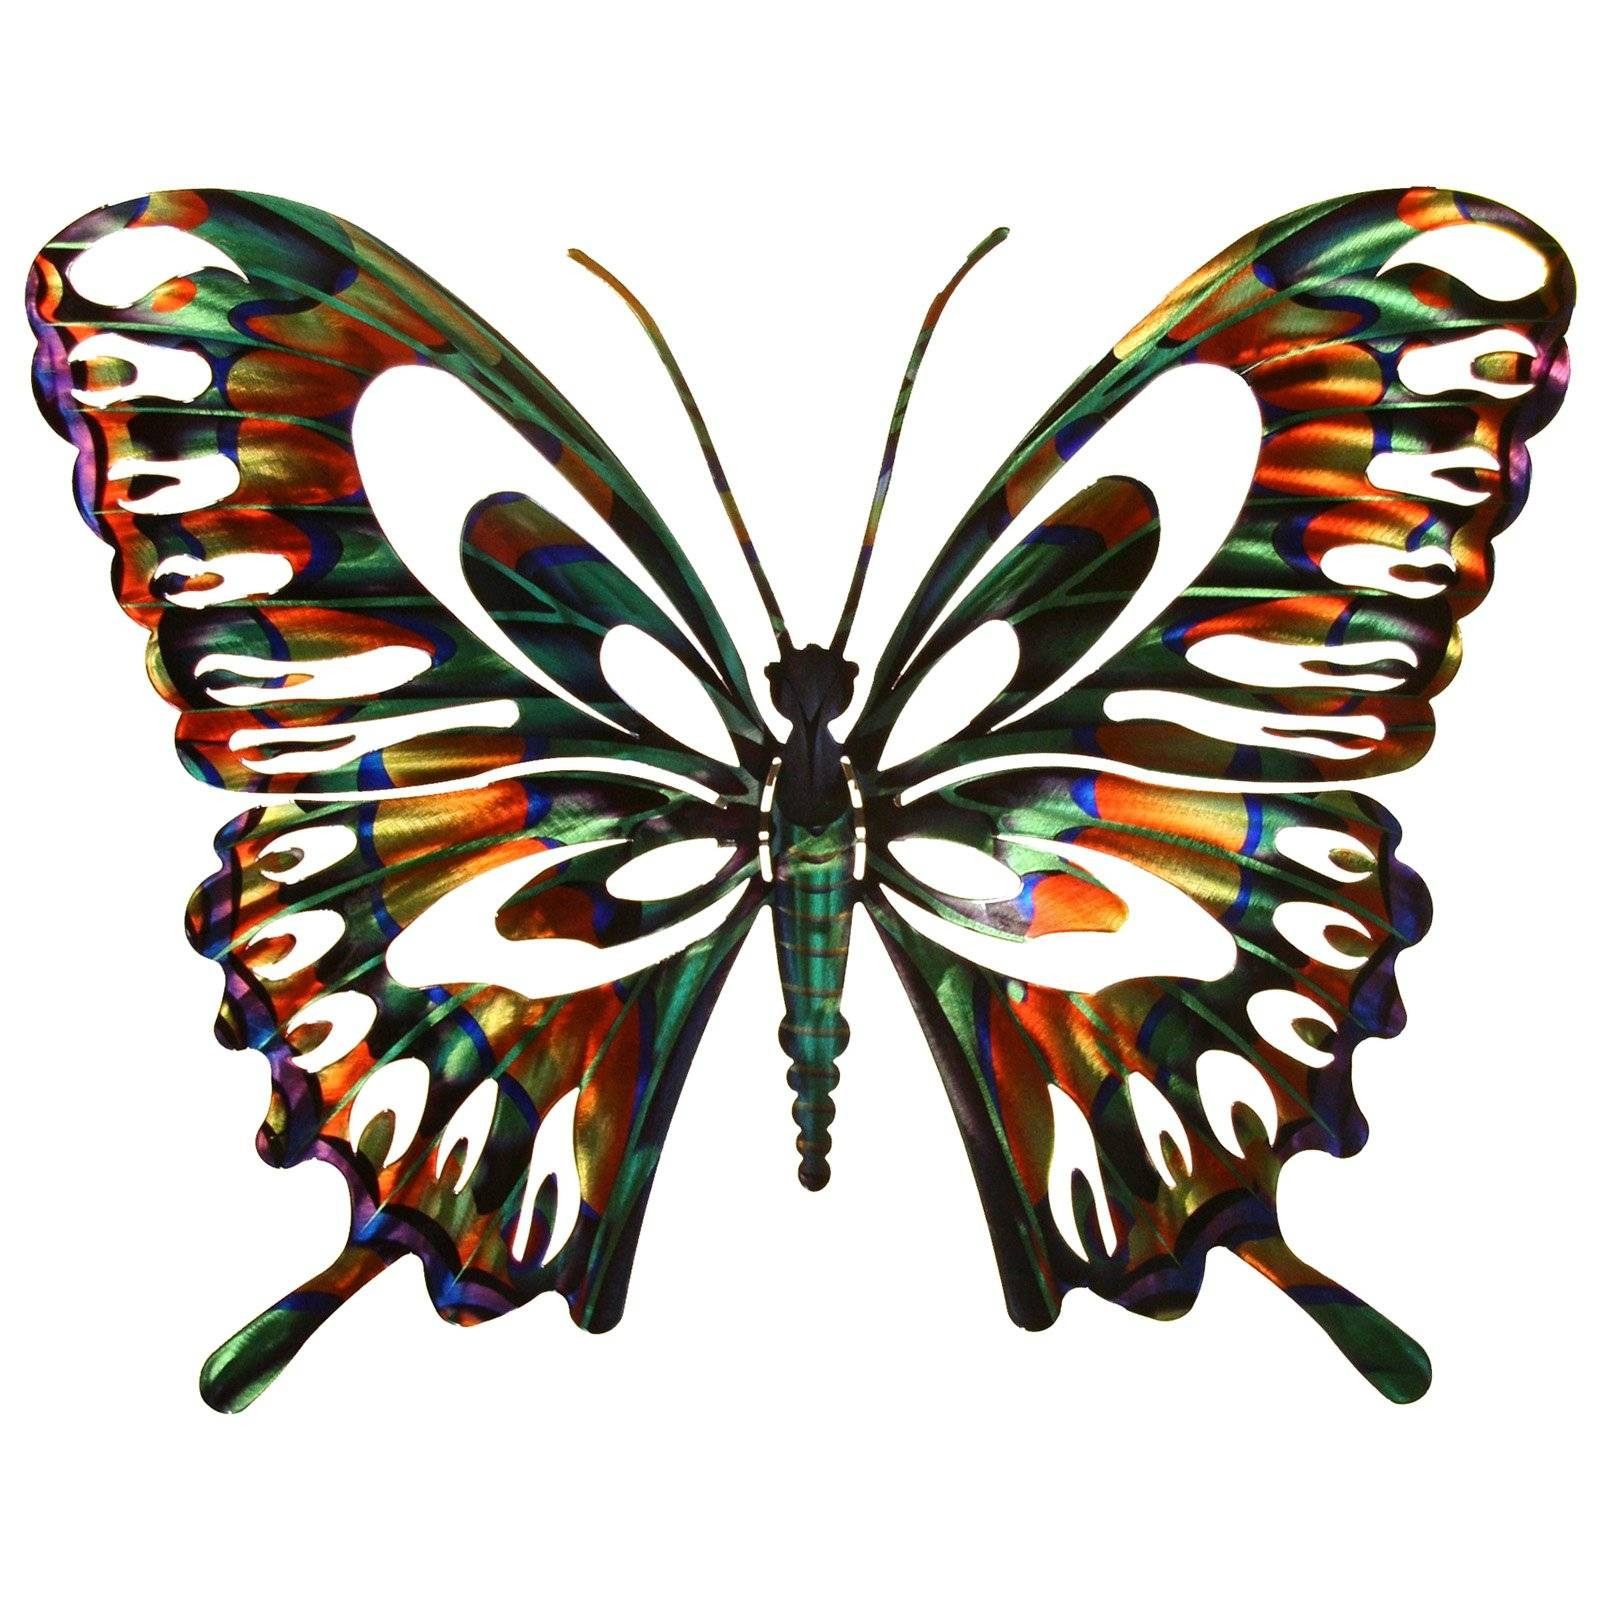 3D Butterfly Metal Outdoor Wall Art | Hayneedle In Latest Butterfly Garden Metal Wall Art (View 1 of 20)